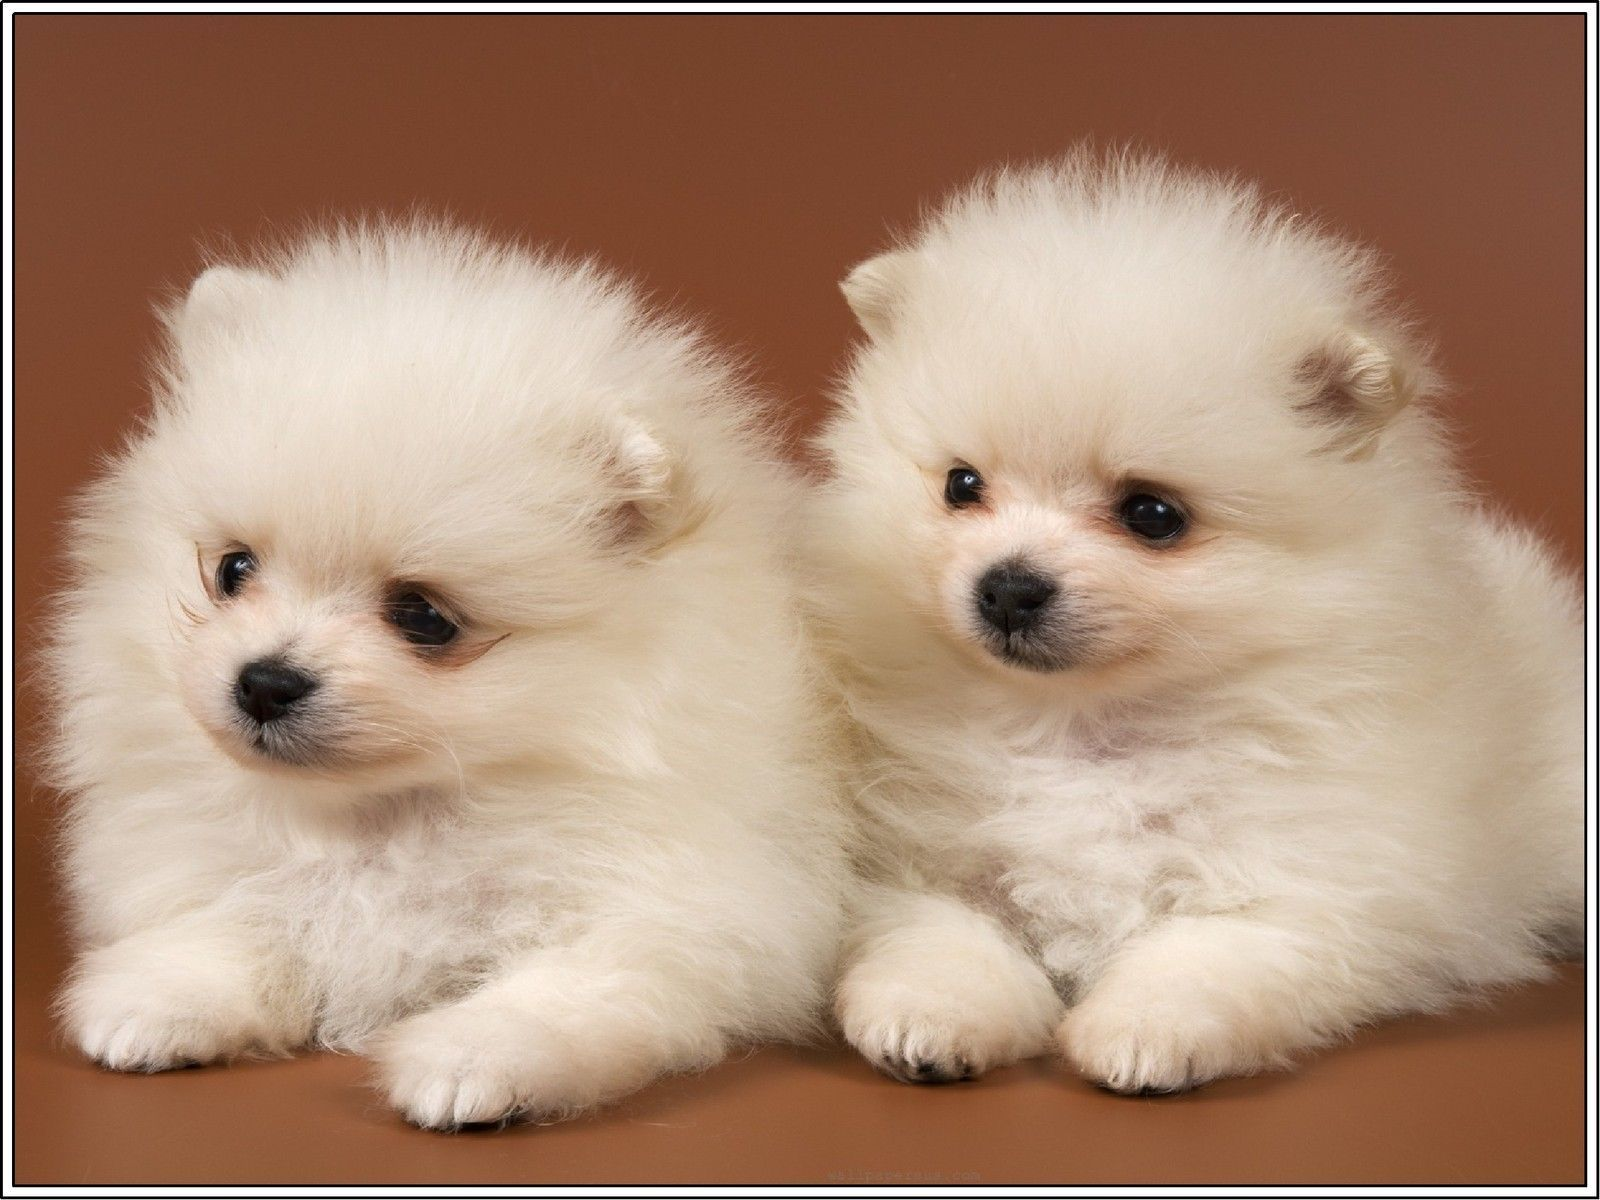 Pack puppy dog pomeranian dogs puppies white greeting notecards